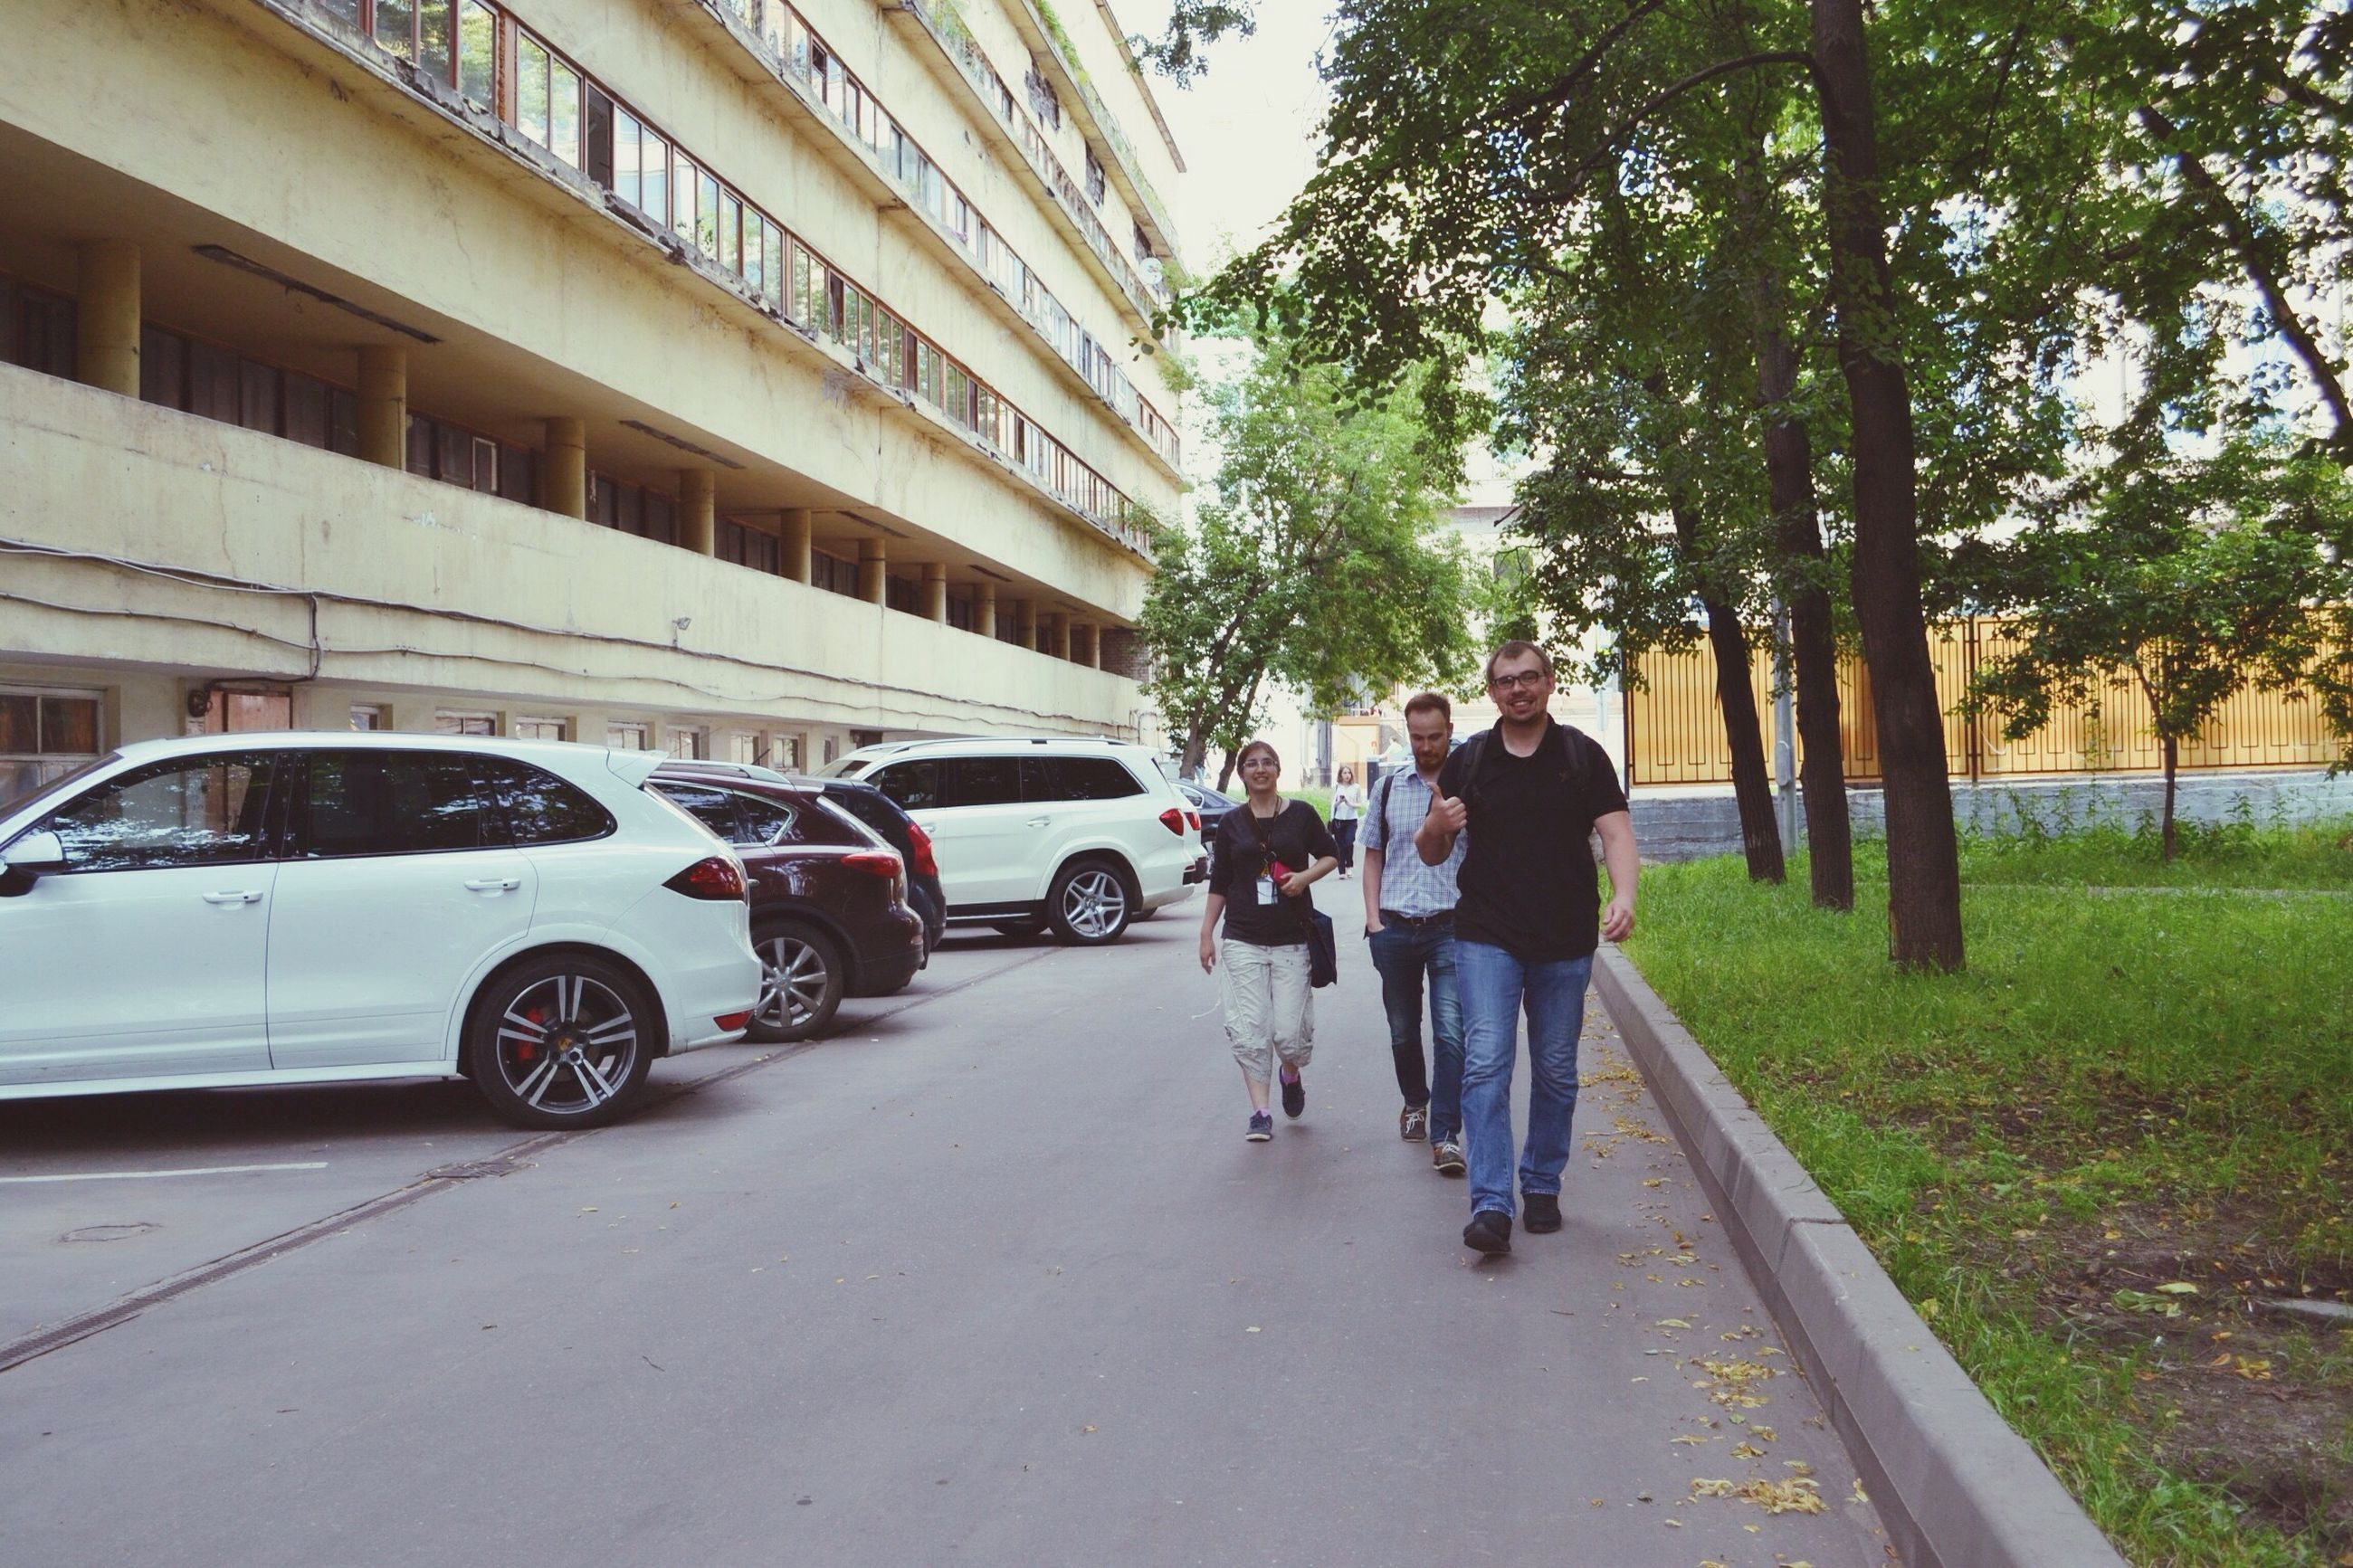 car, full length, togetherness, walking, road, transportation, tree, architecture, outdoors, real people, men, city, day, friendship, sky, people